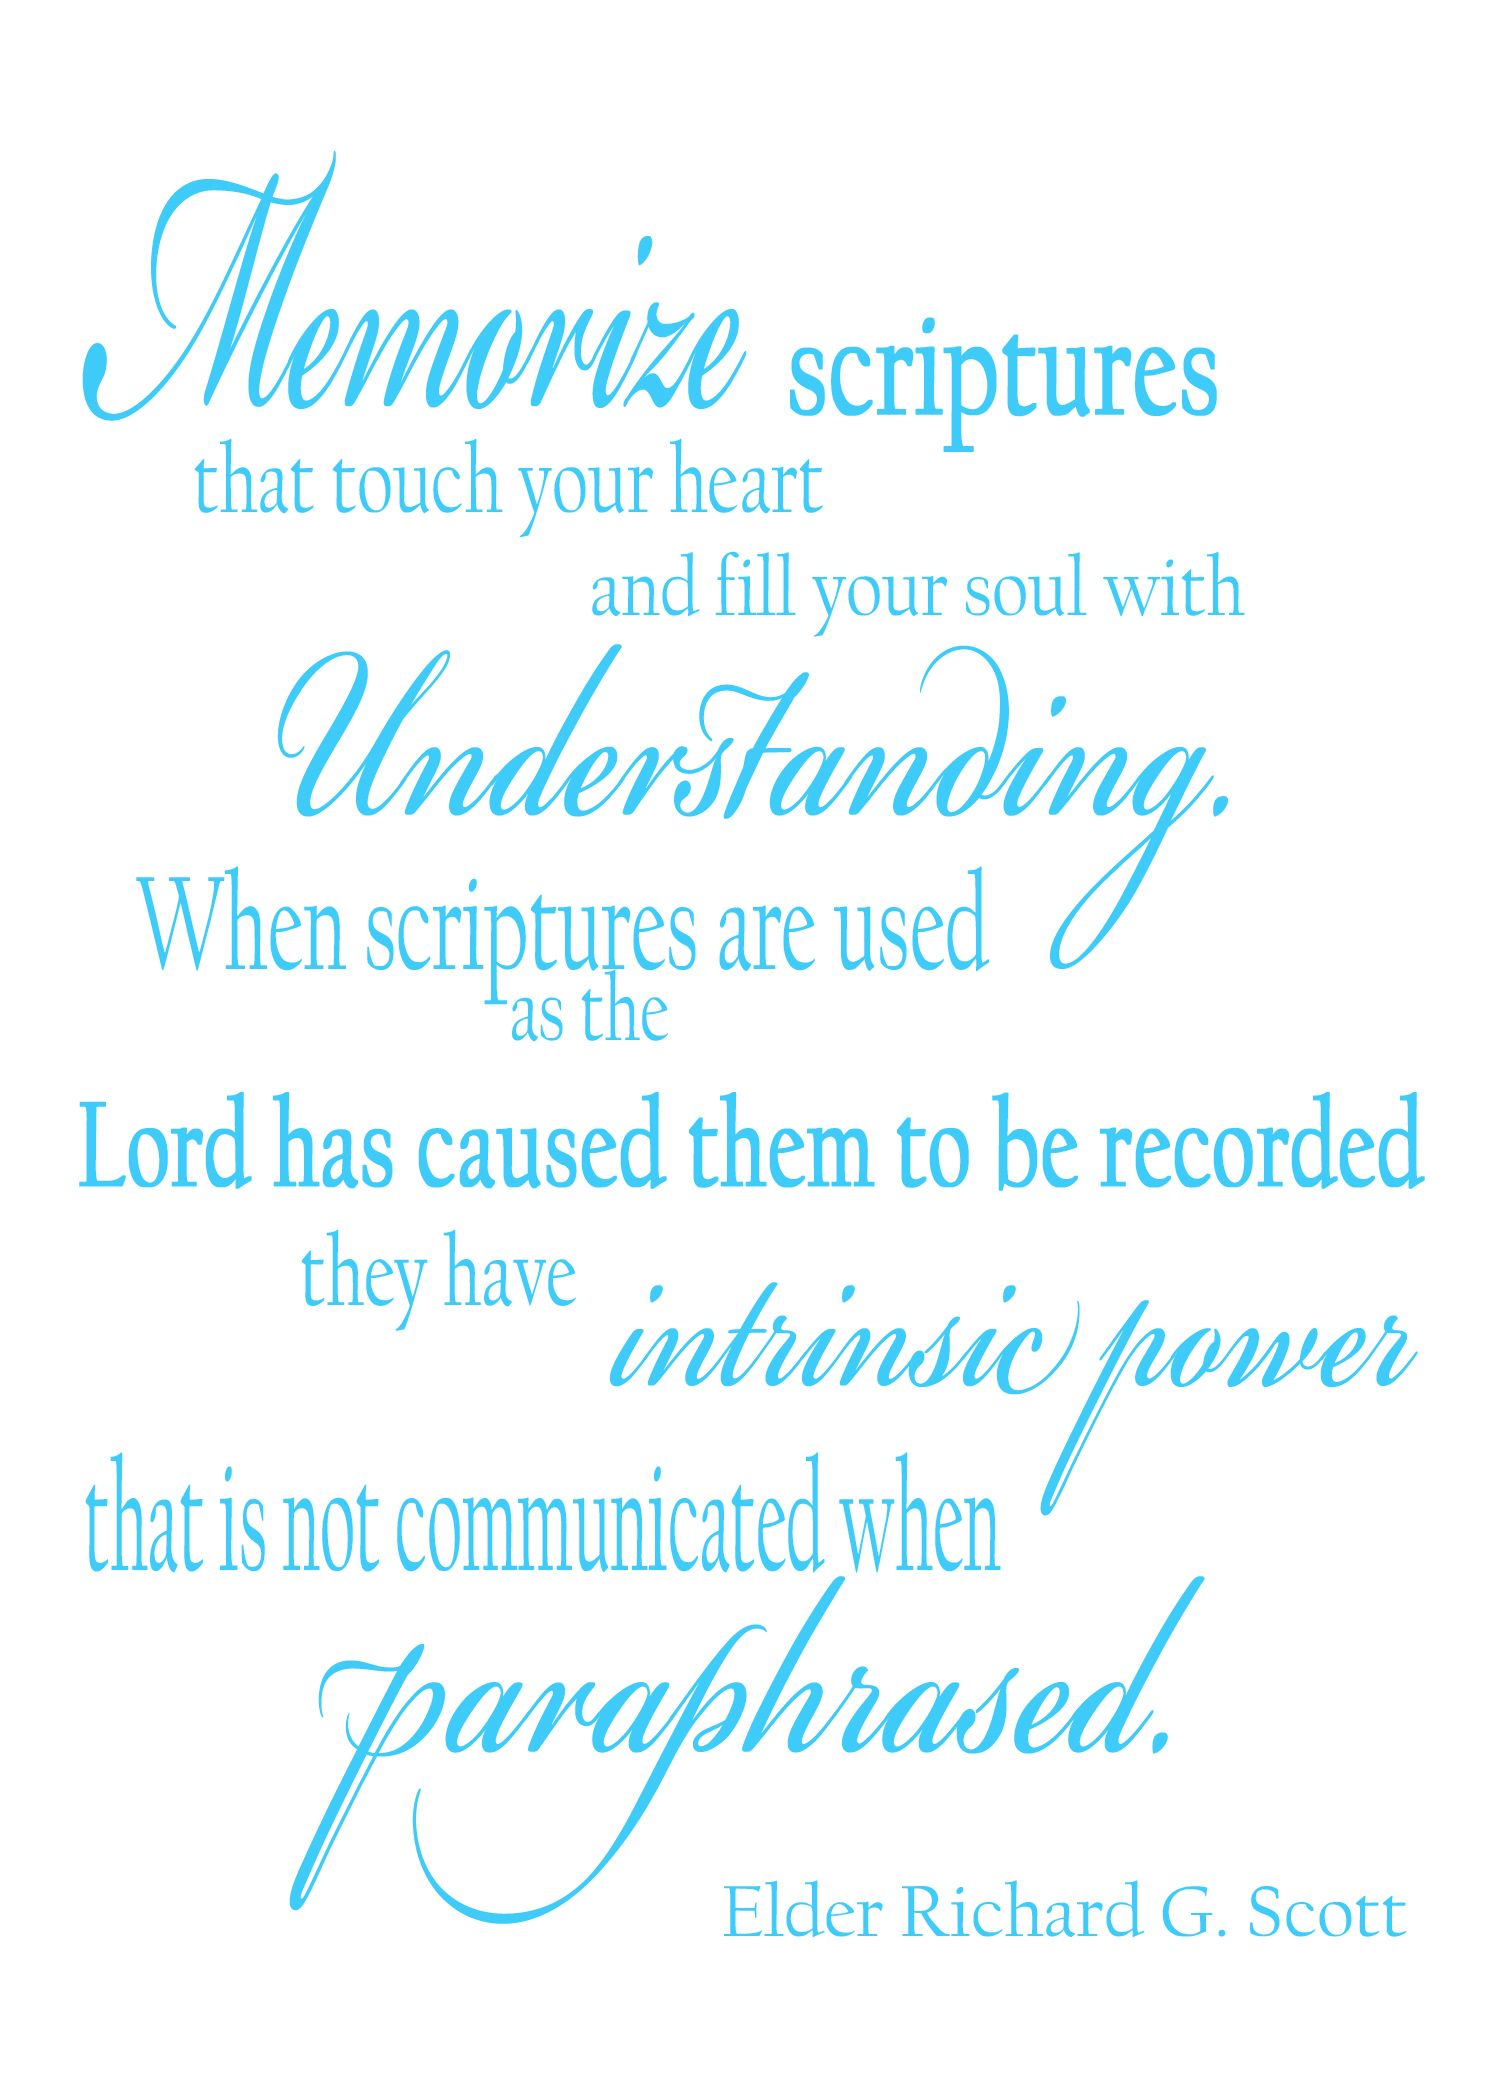 Memorize Scripture Quote That Touch Your Heart How To Thing Belief Quotes Bible App Where Verse Are Paraphrased